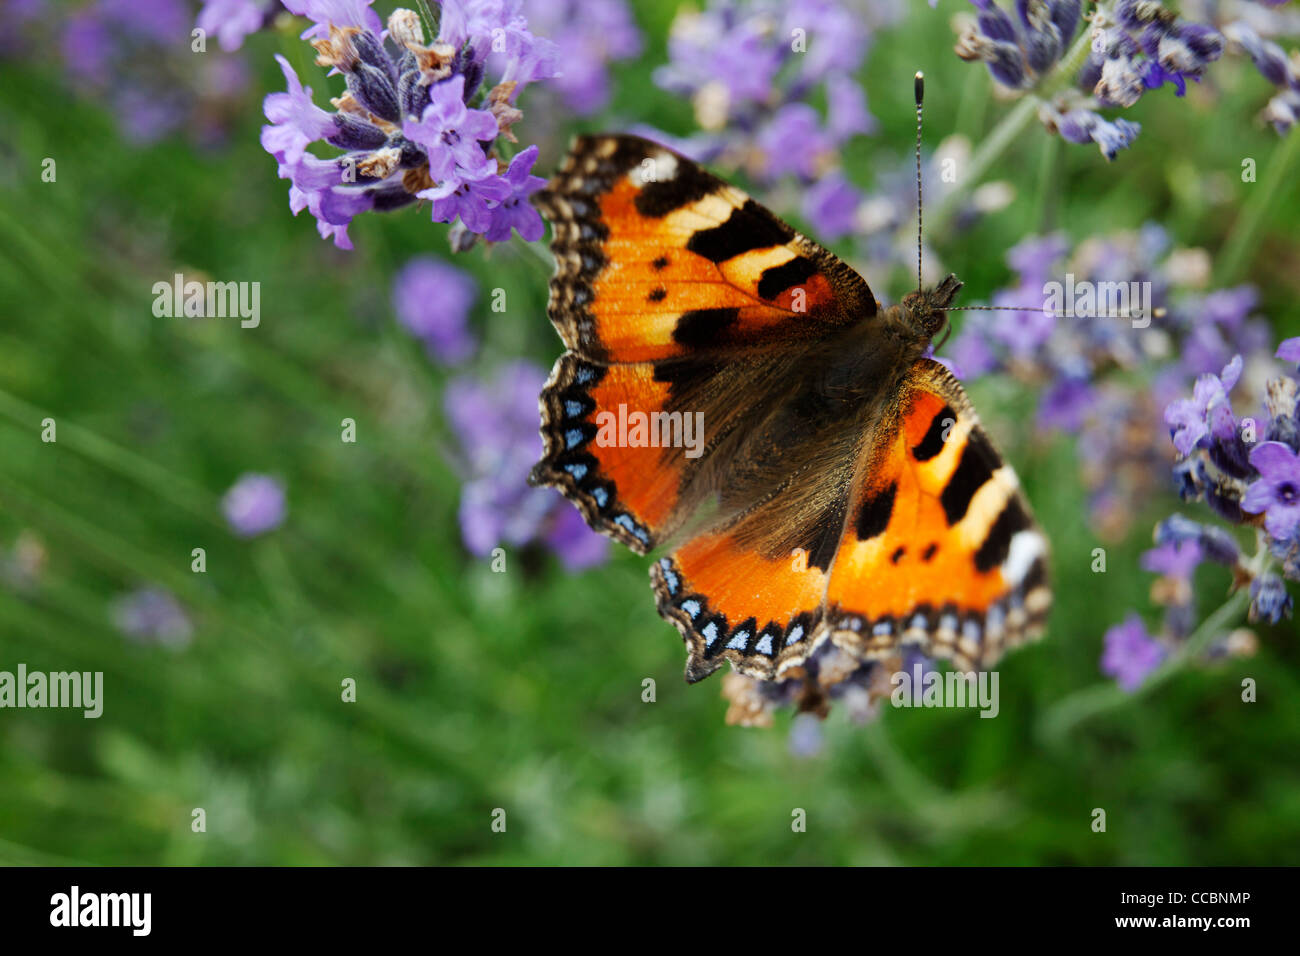 kleiner fuchs schmetterling aglais urticae auf lavendel stockfoto bild 42055126 alamy. Black Bedroom Furniture Sets. Home Design Ideas